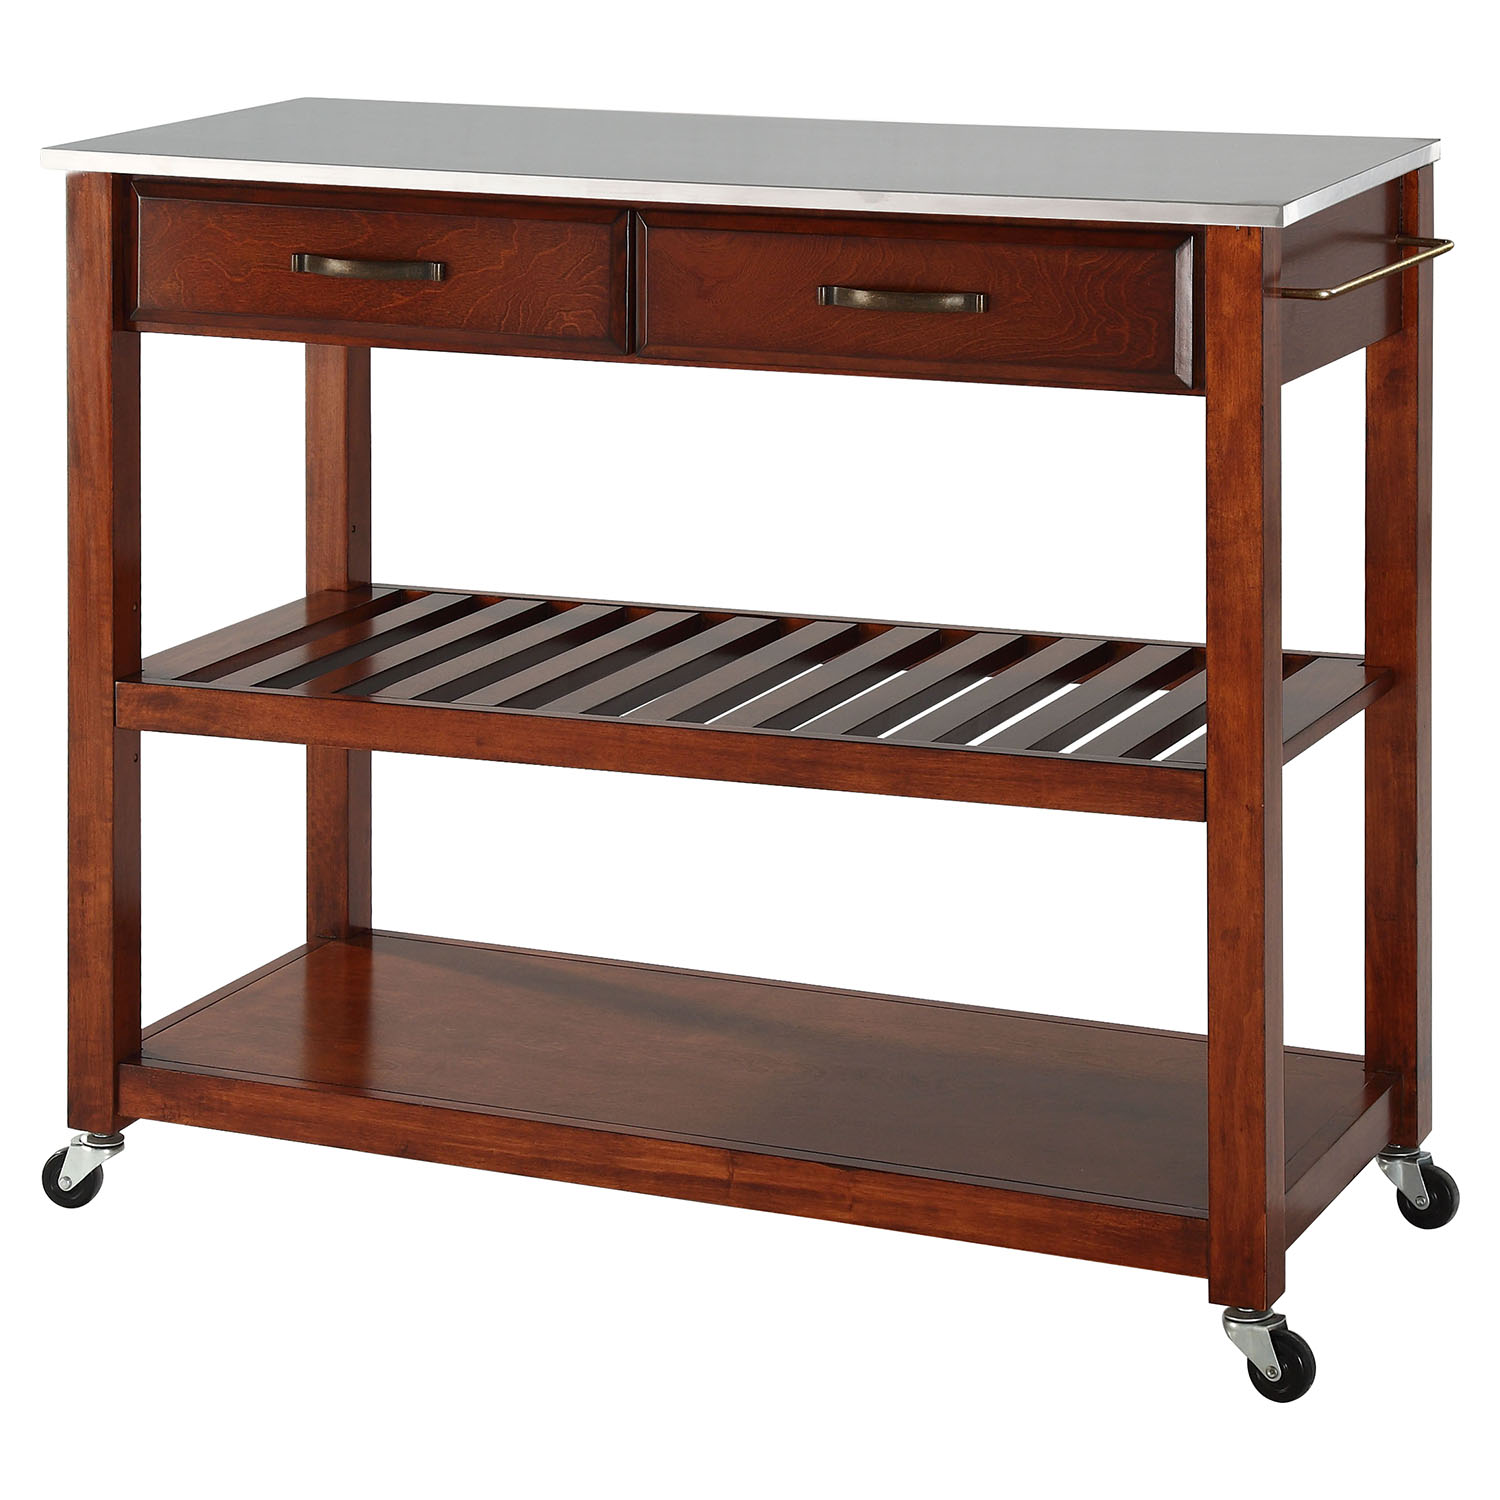 Stainless Steel Top Kitchen Island Cart Classic Cherry